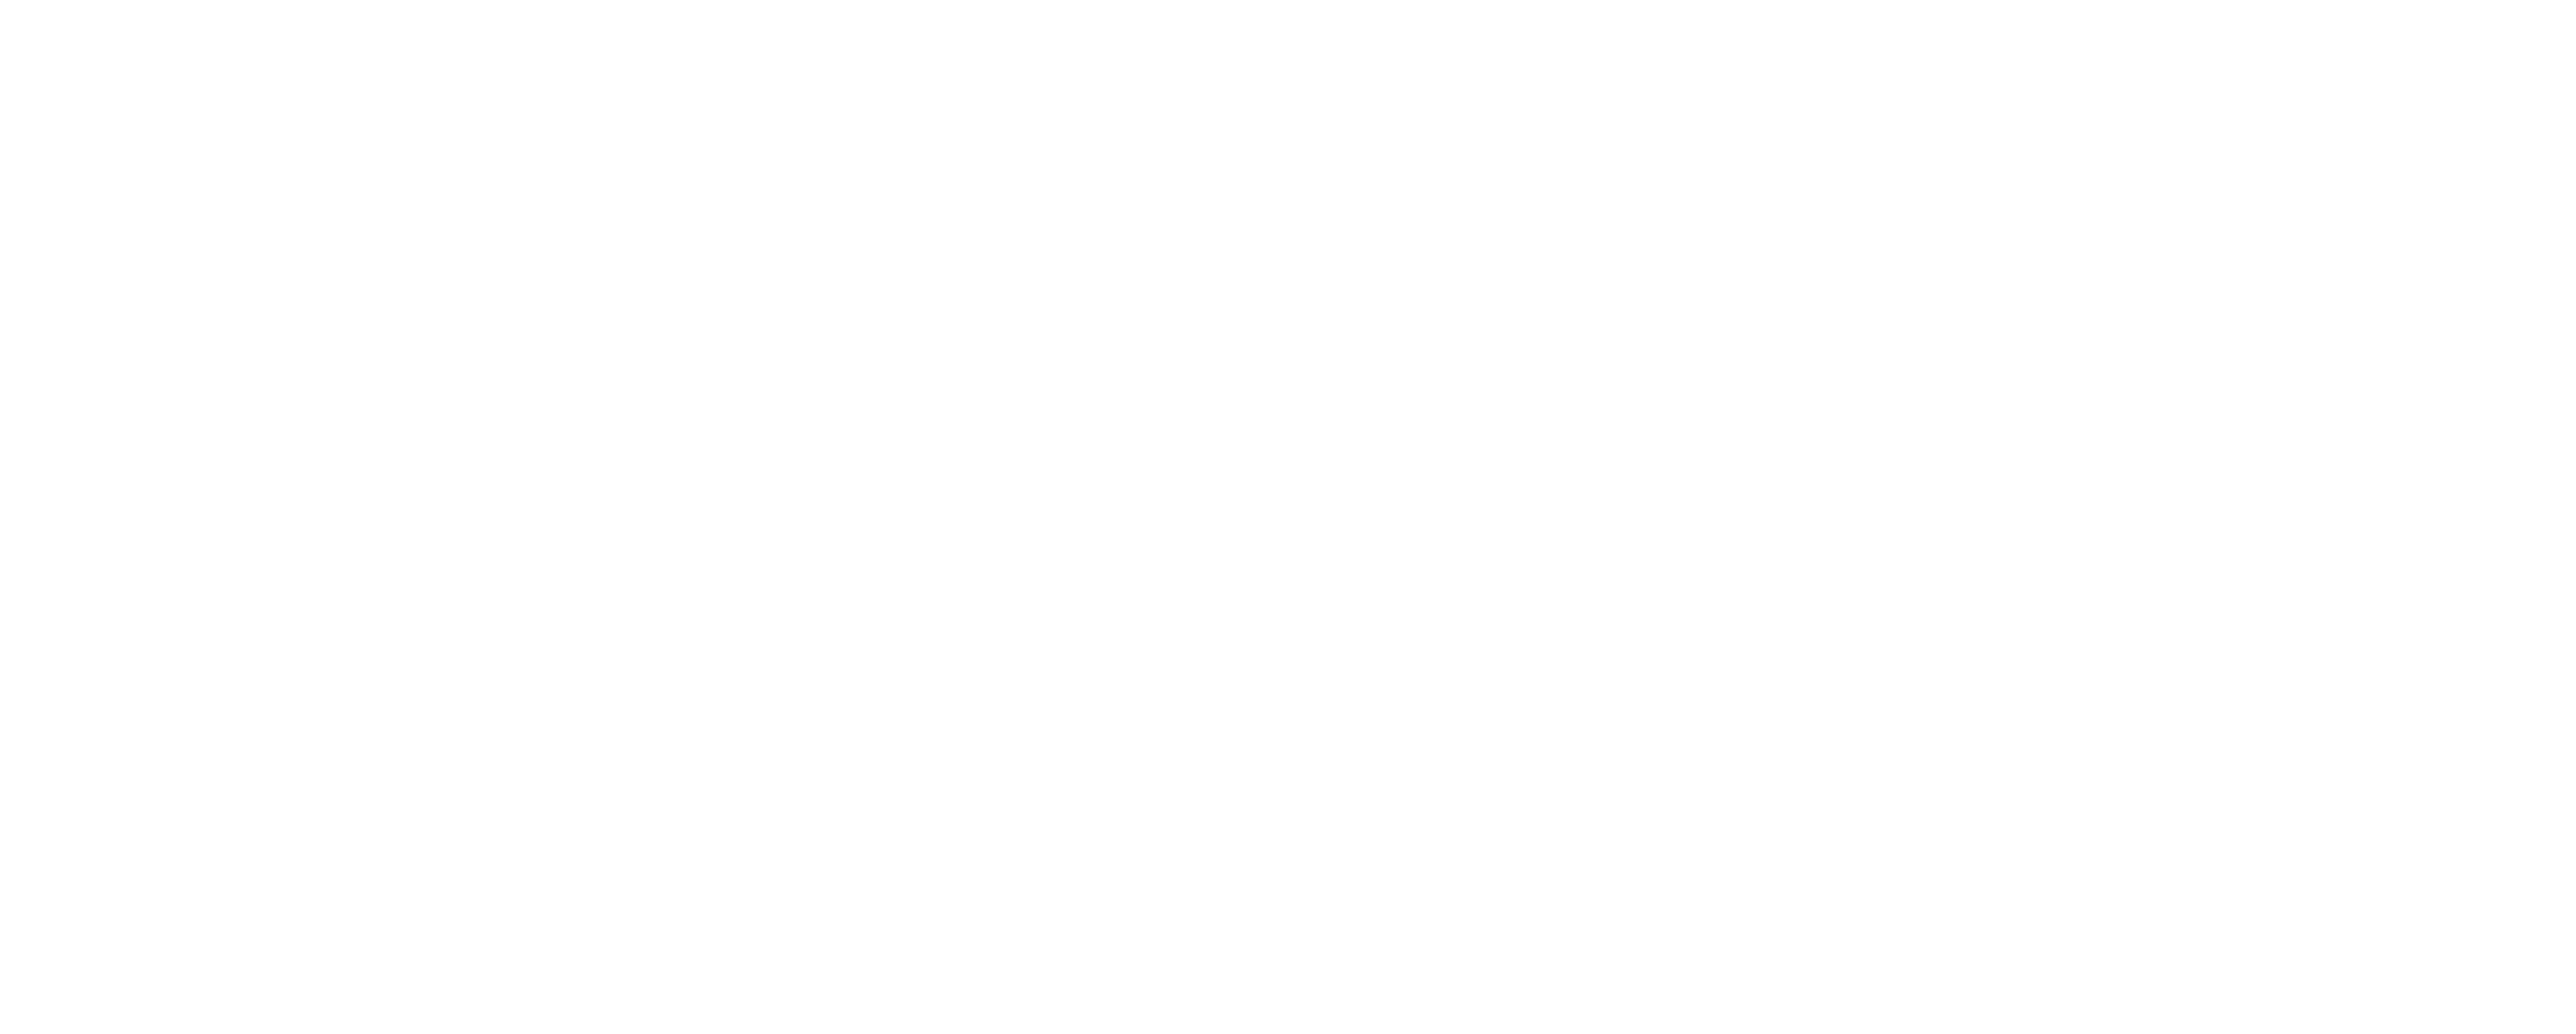 2016 Internet Advertising Competition